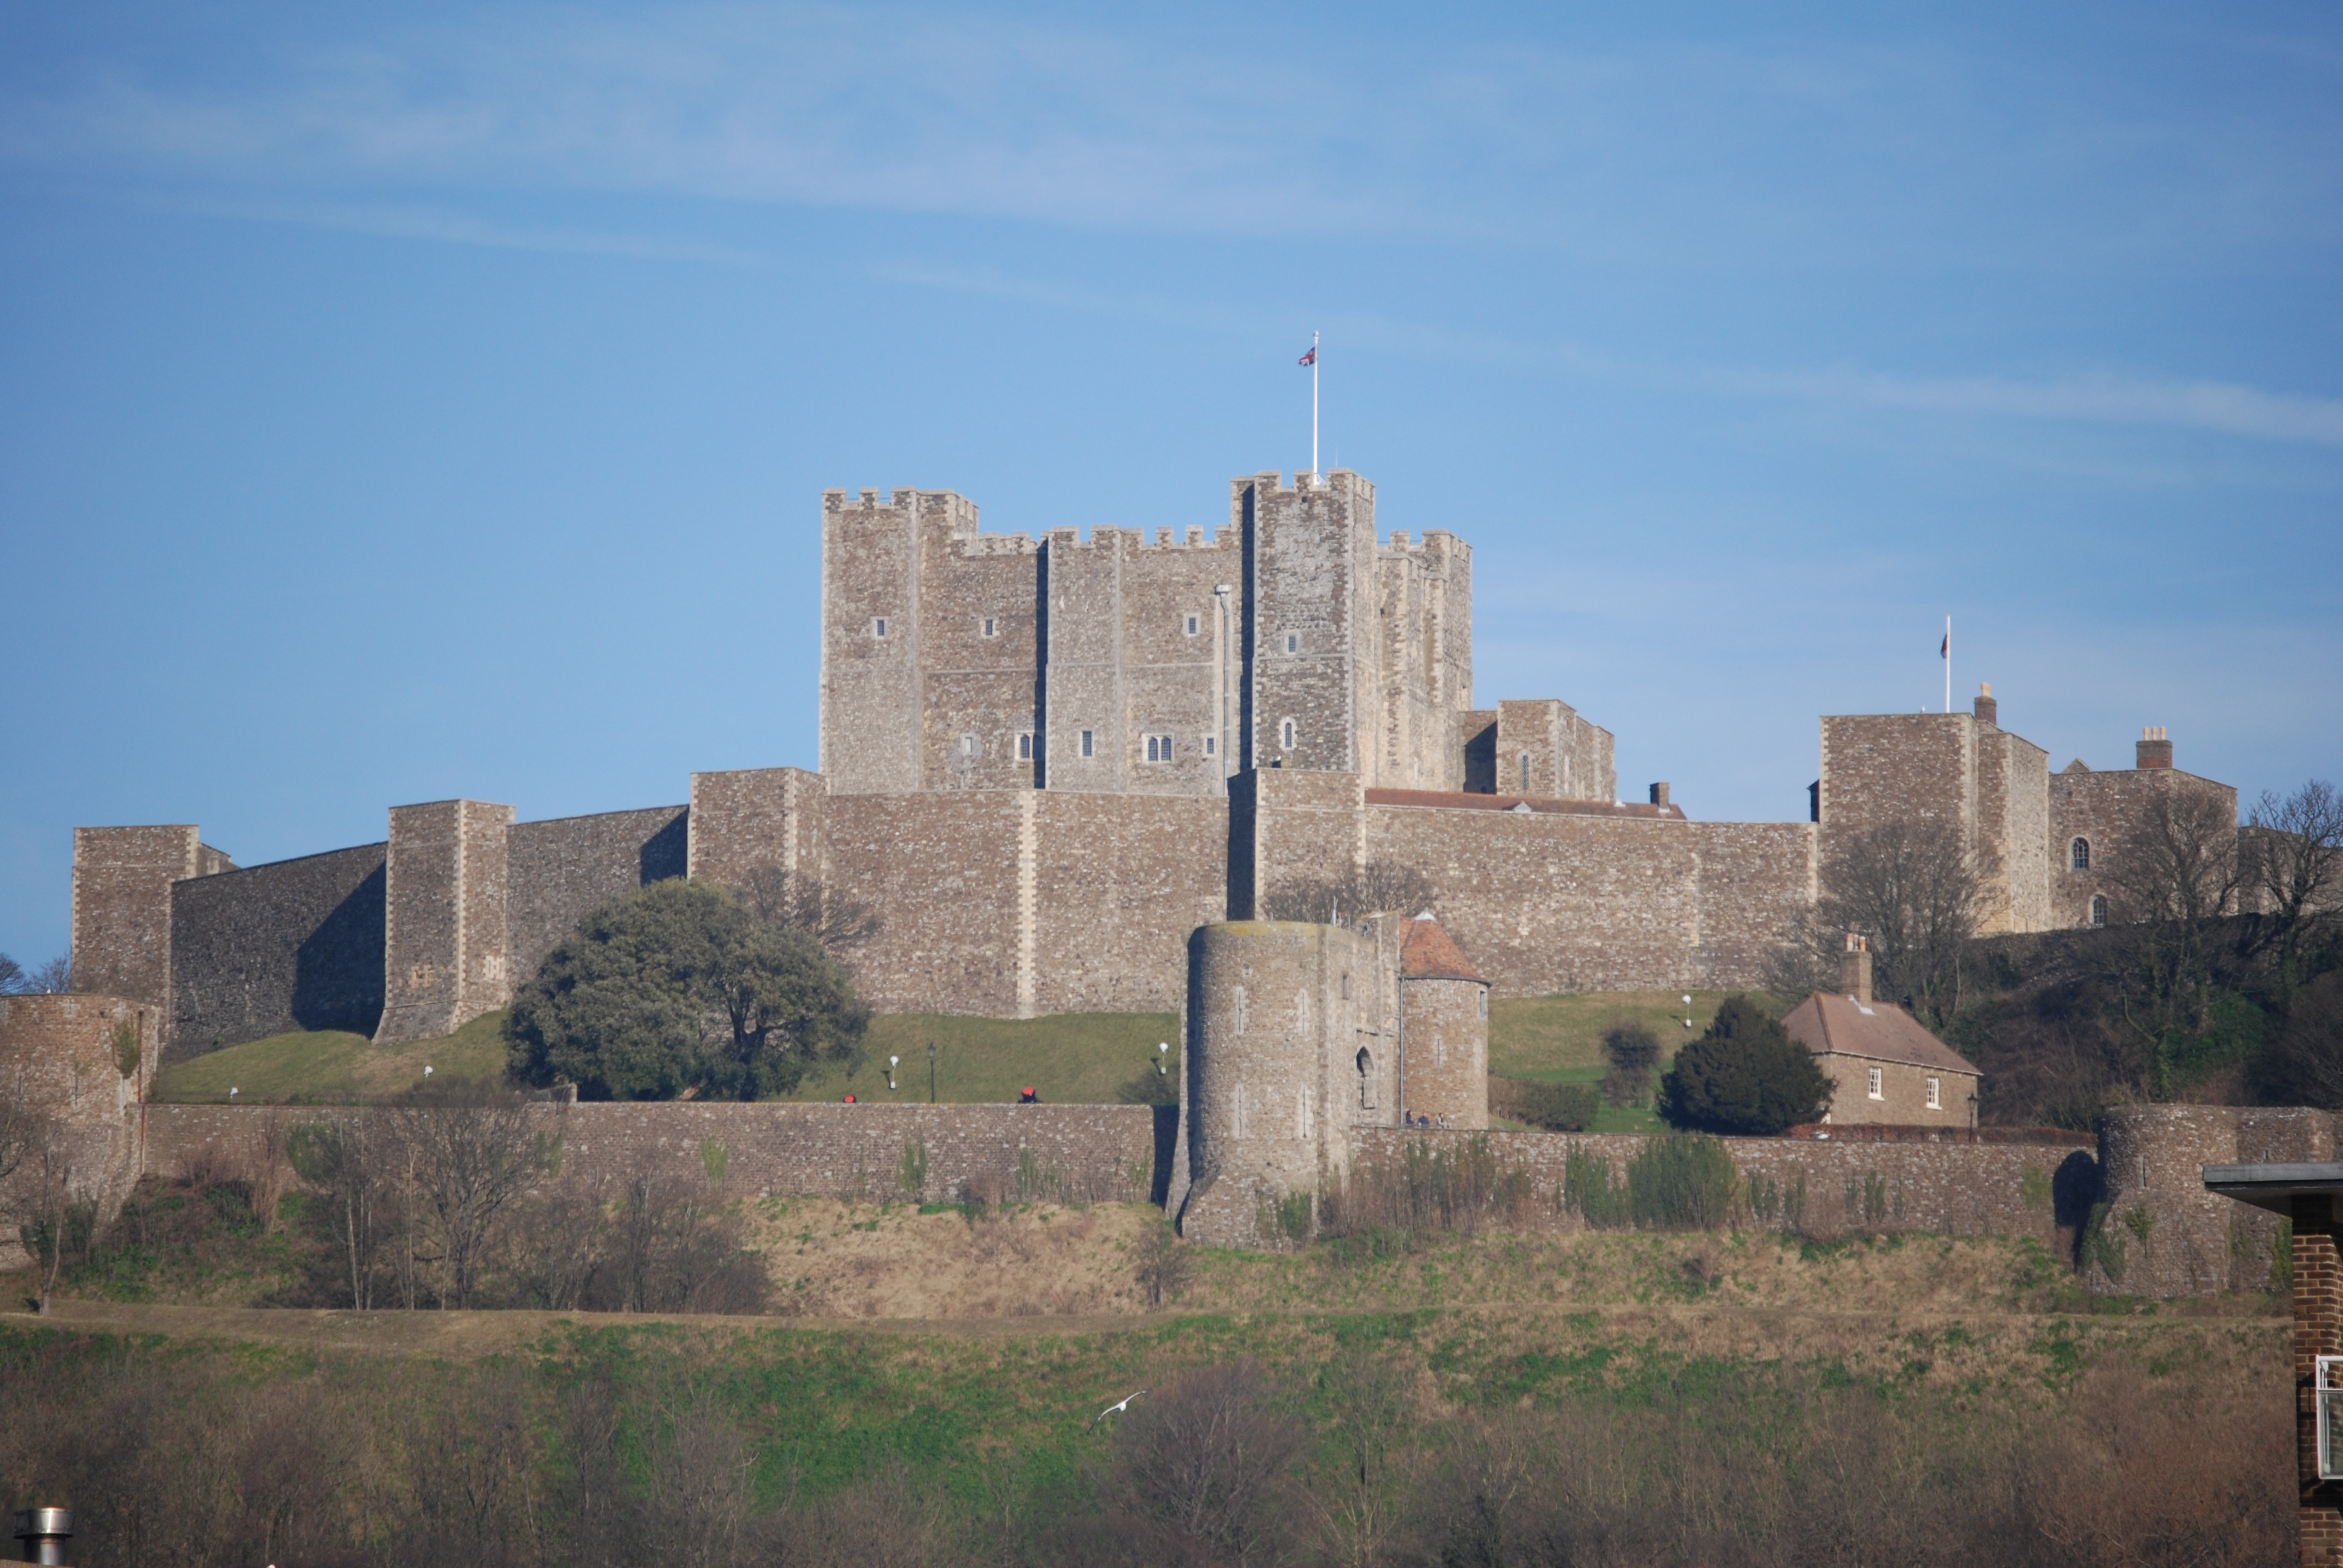 Architecture design of the dover castle the largest for Castle architecture design